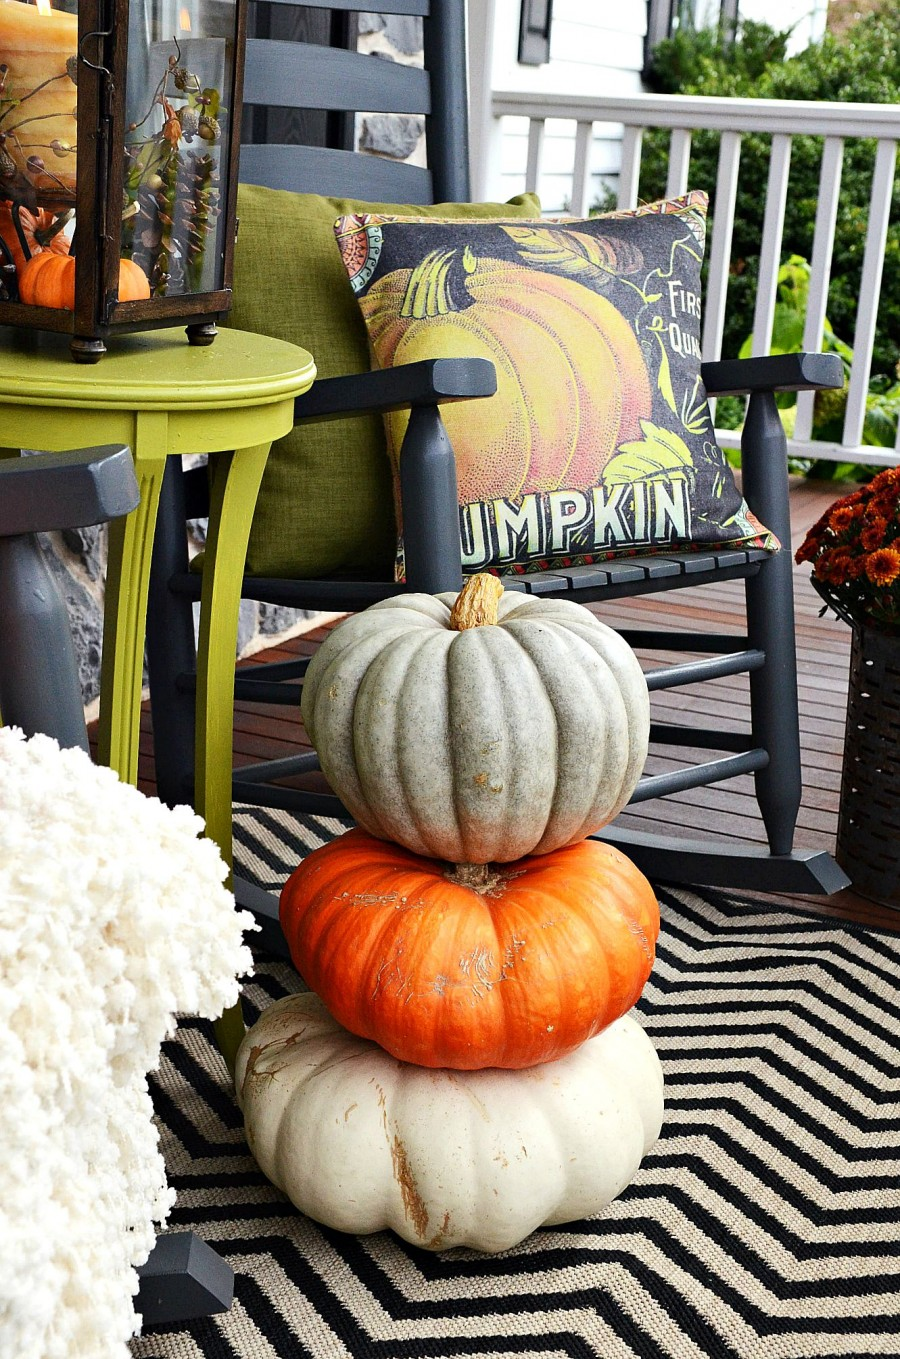 10 NATURAL FALL ELEMENT TO USE IN YOUR DECOR- Bring the beauty of the outdoors into your home this fall-stonegableblog.com